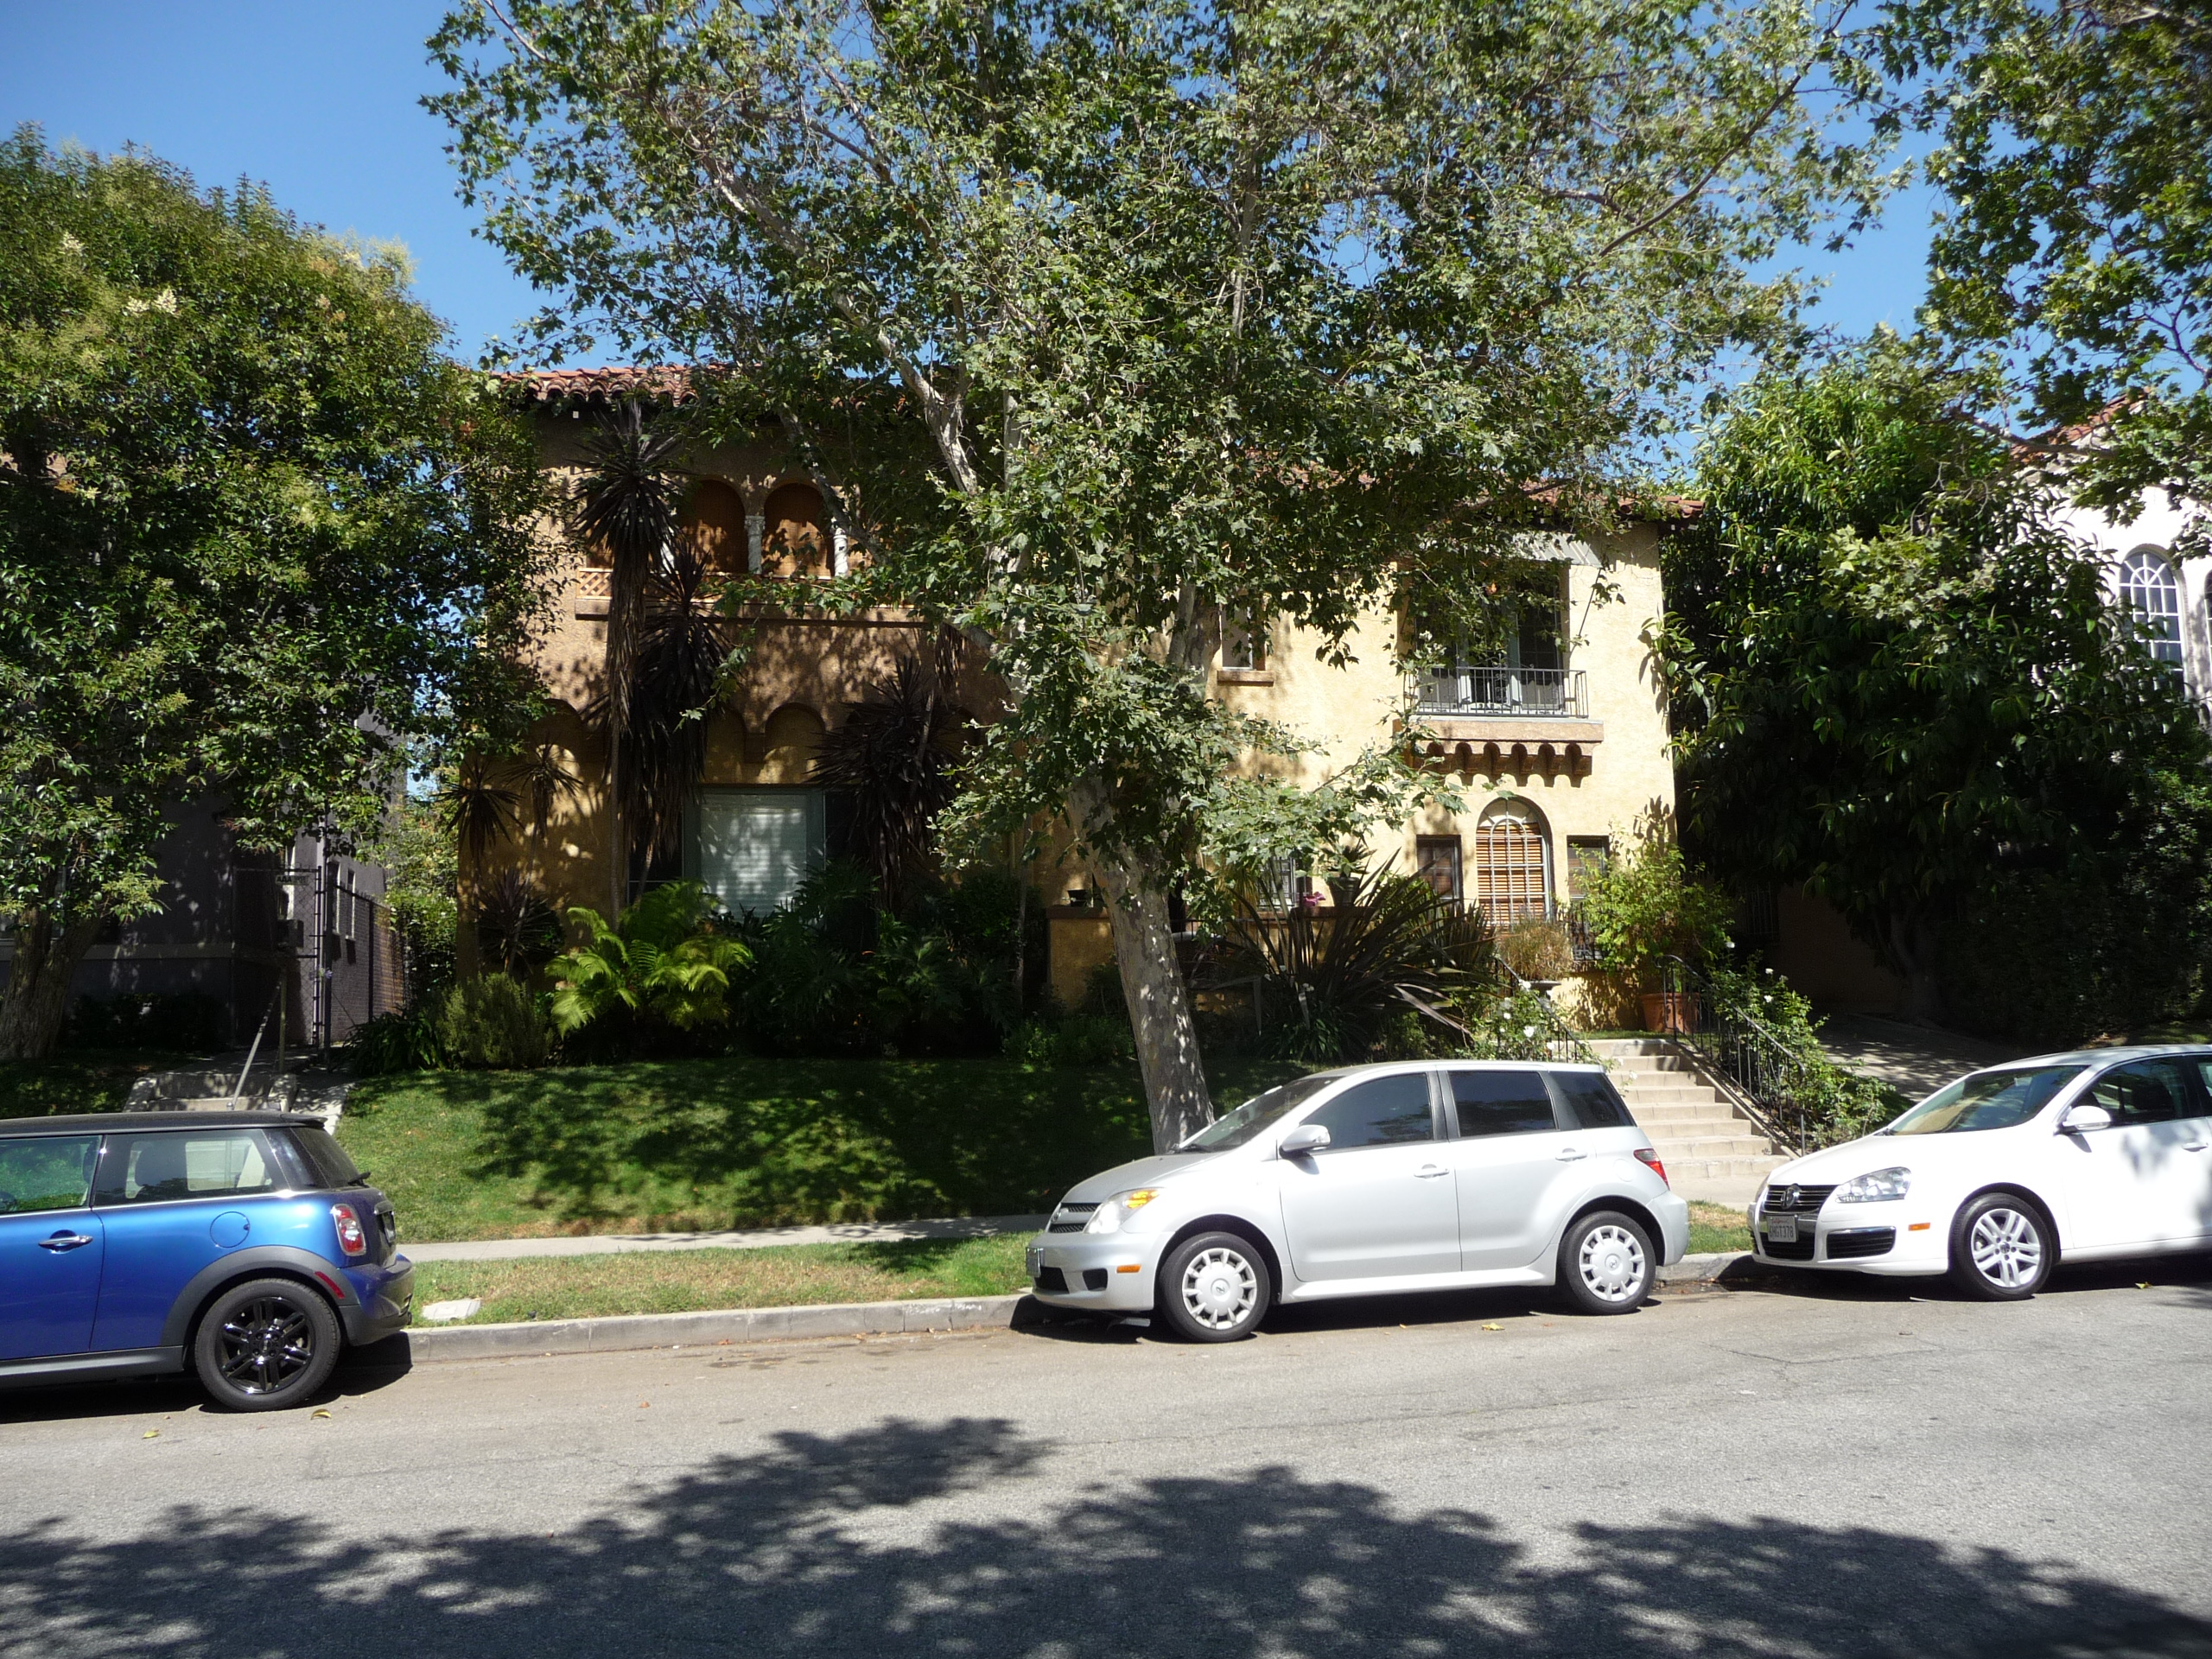 178 N SYCAMORE AVE - PHOTO